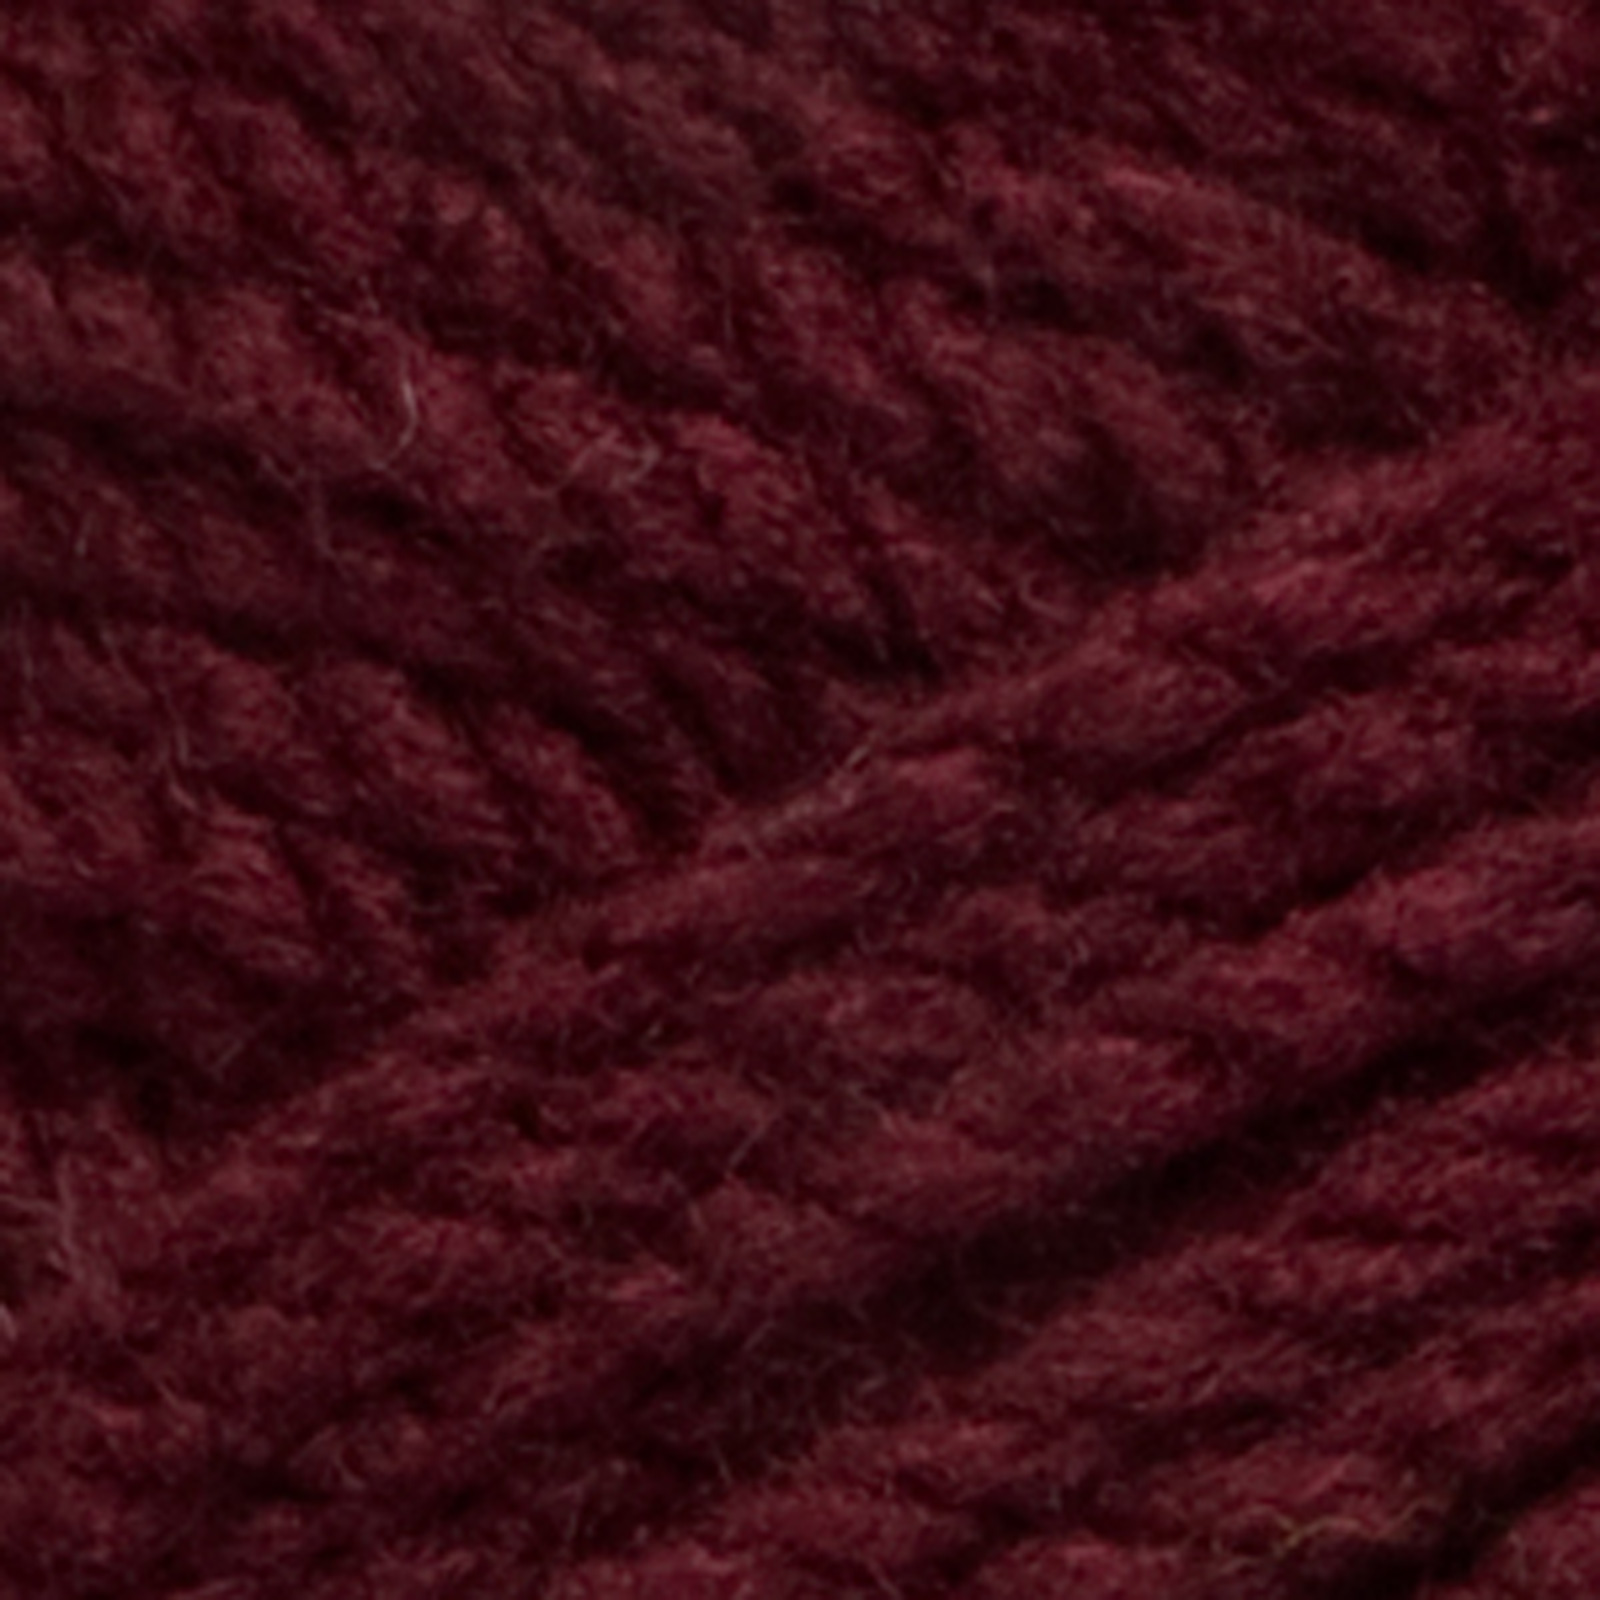 Red Heart Super Saver Chunky Yarn 378 Claret